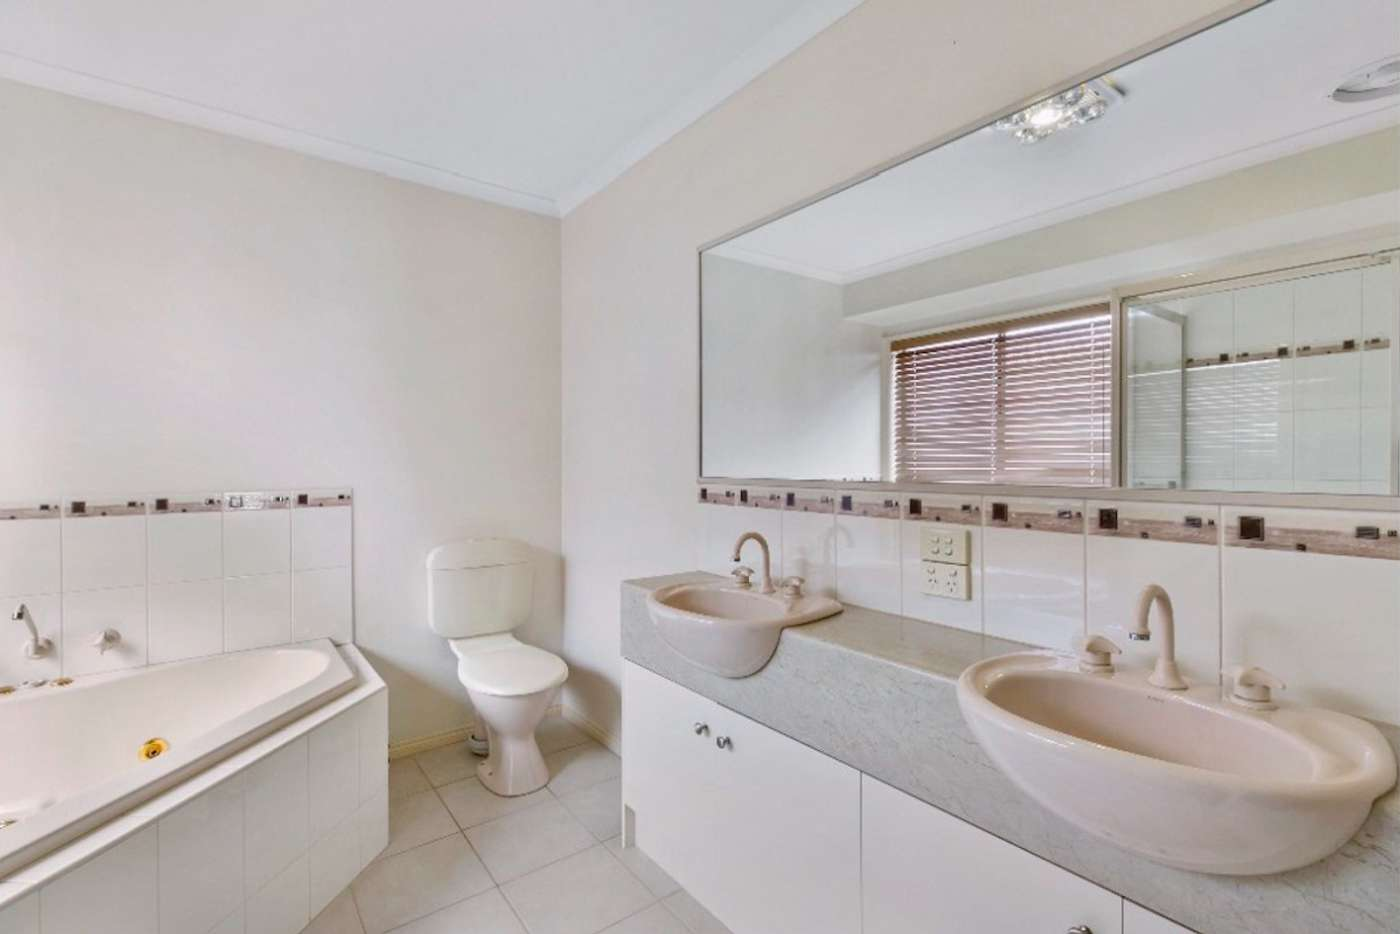 Sixth view of Homely house listing, 13 Iriswells Close, Tooradin VIC 3980